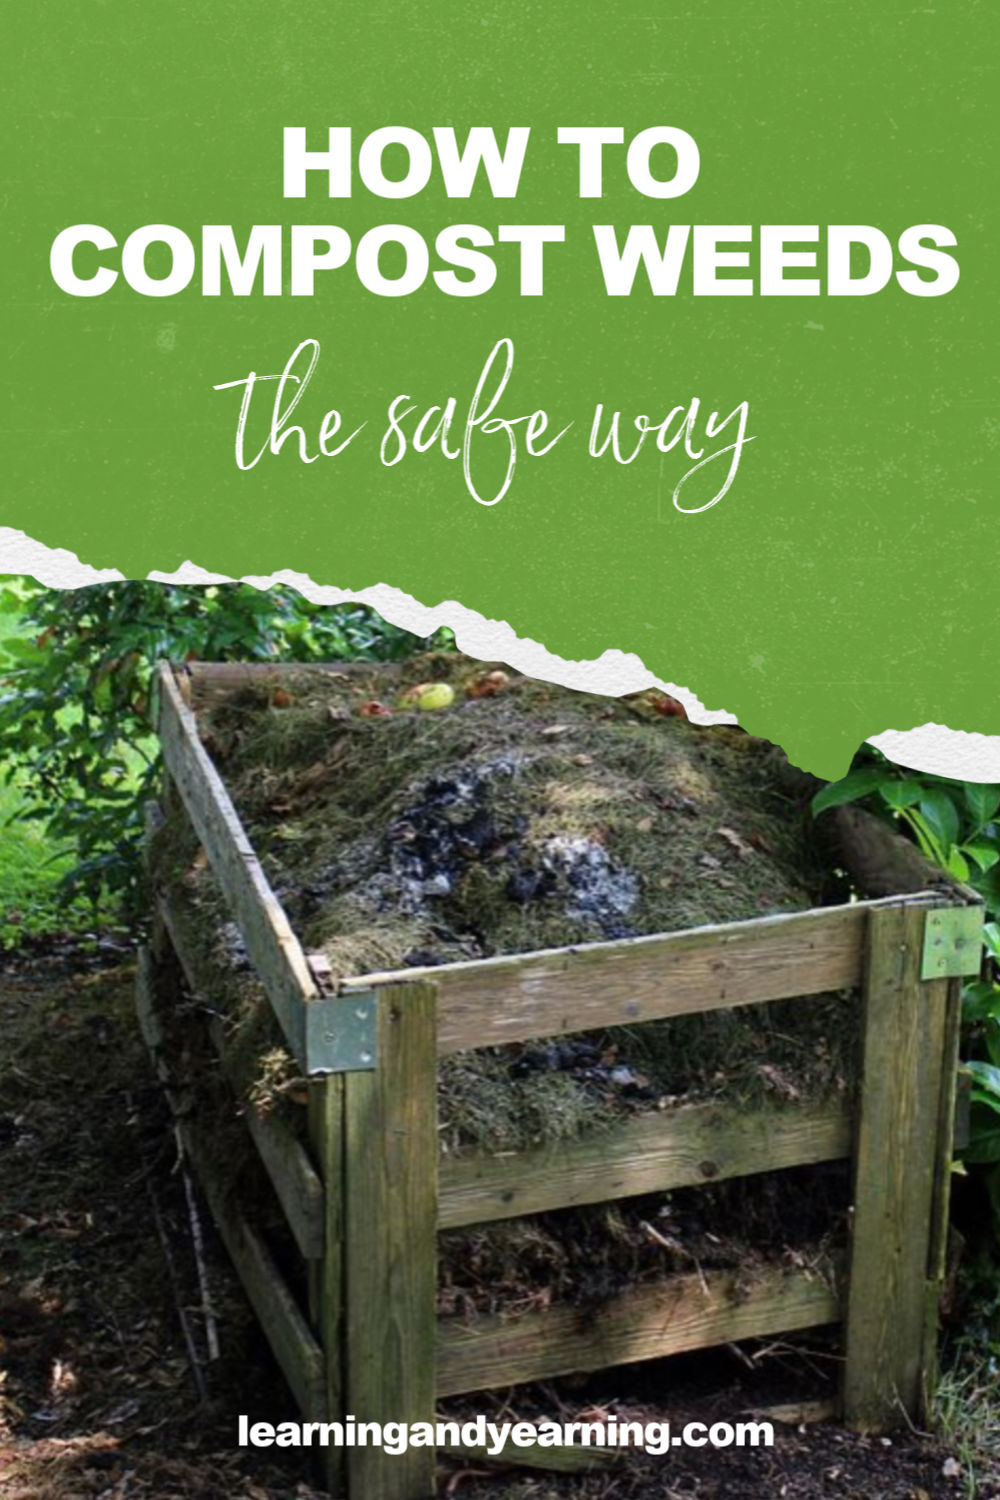 How to compost weeds the safe way!